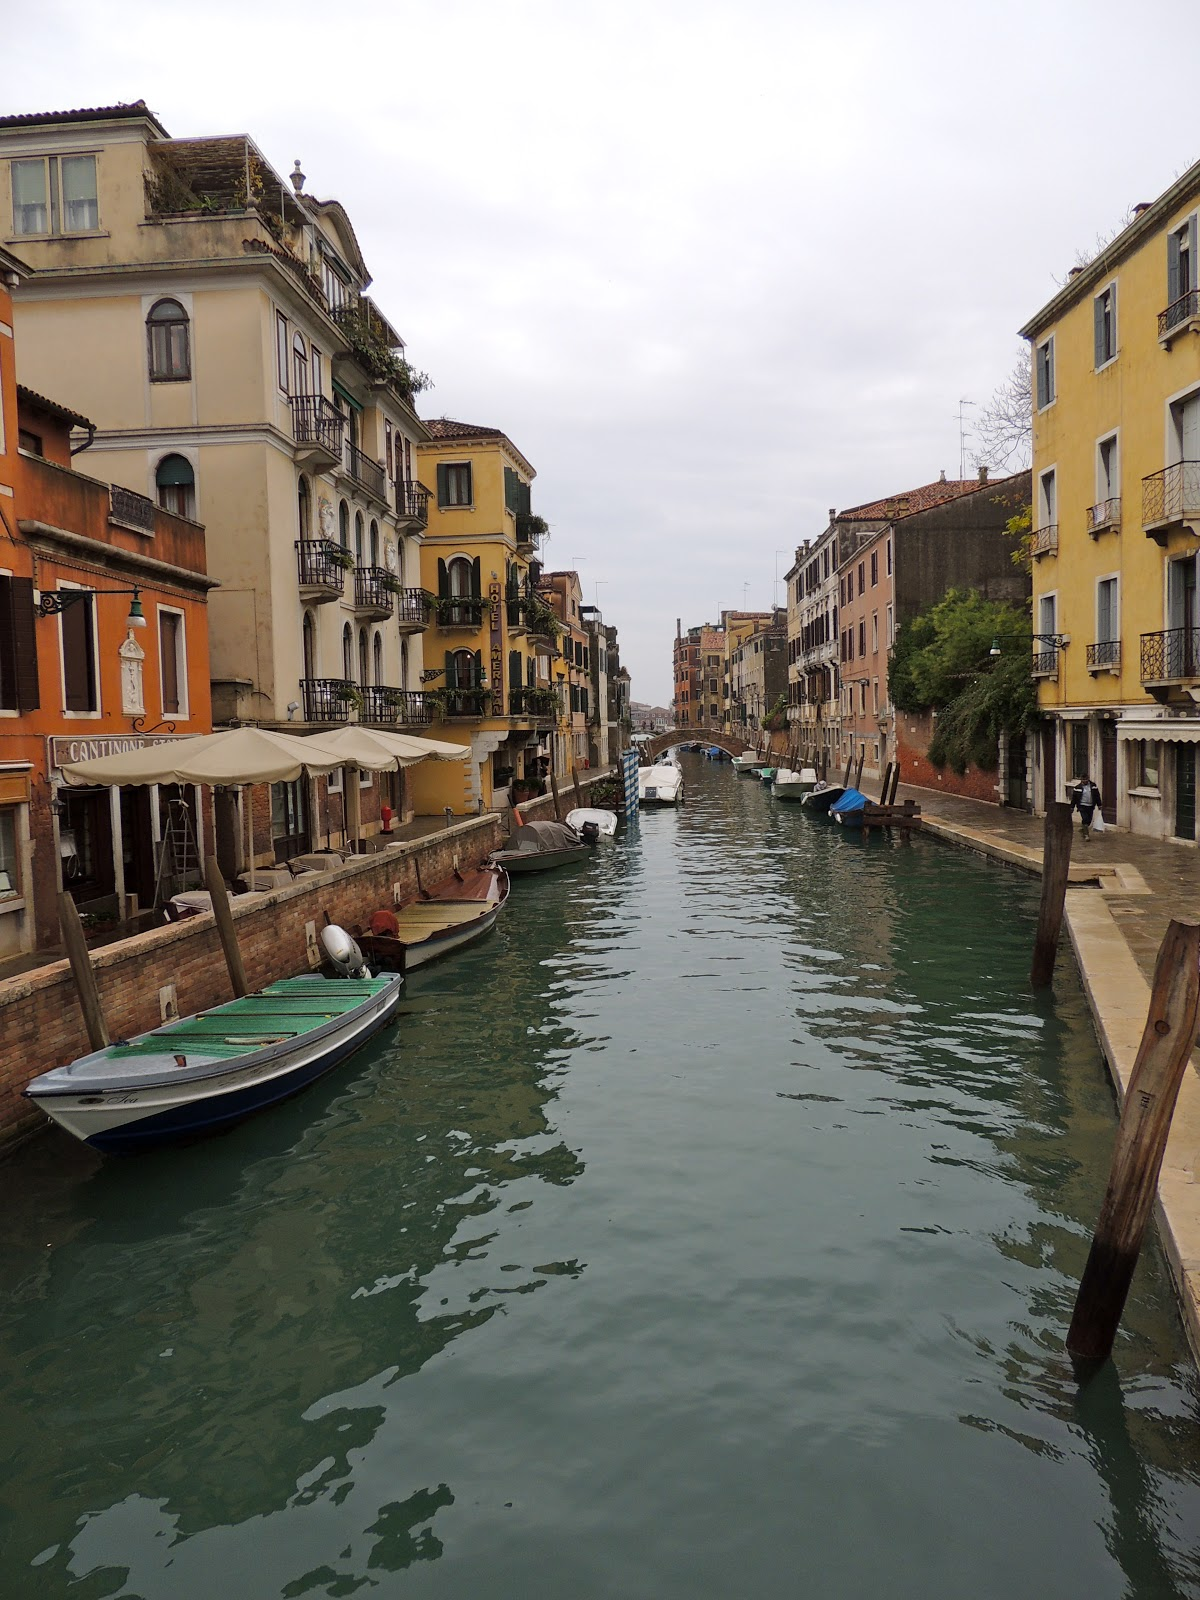 Venice: A Magical Destination for School Trips